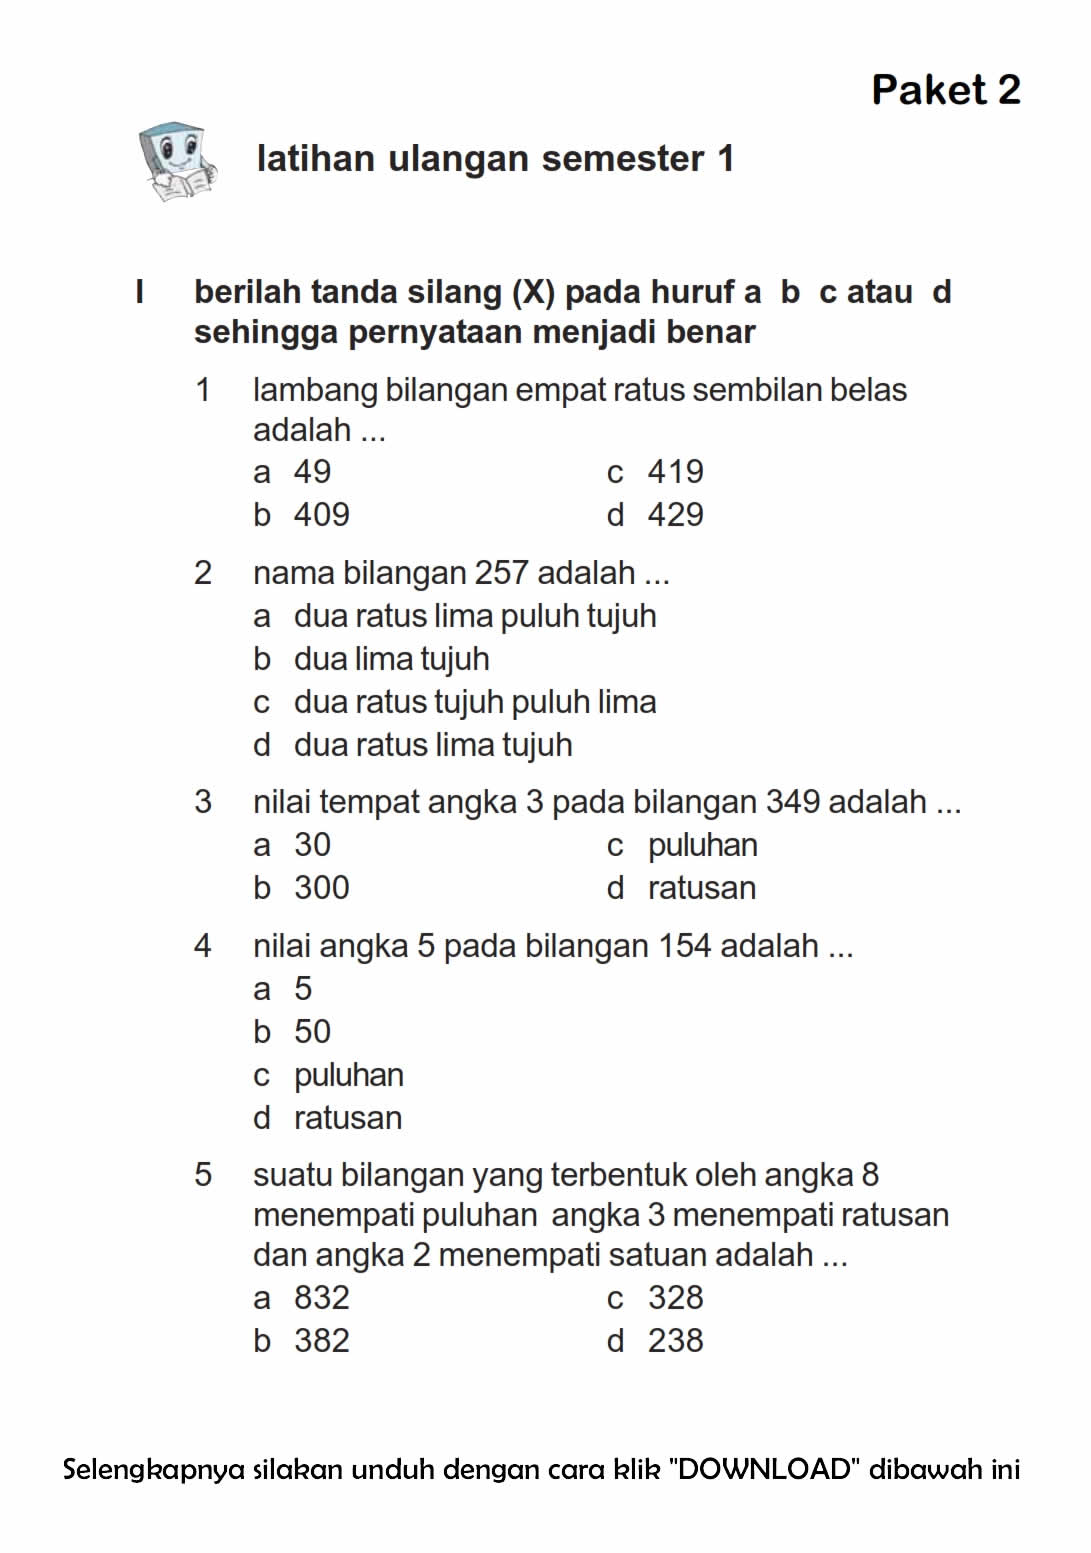 Download Soal UAS Ganjil Matematika Kelas 2 Semester 1  2015/2016 ~ Rief Awa Blog : Download